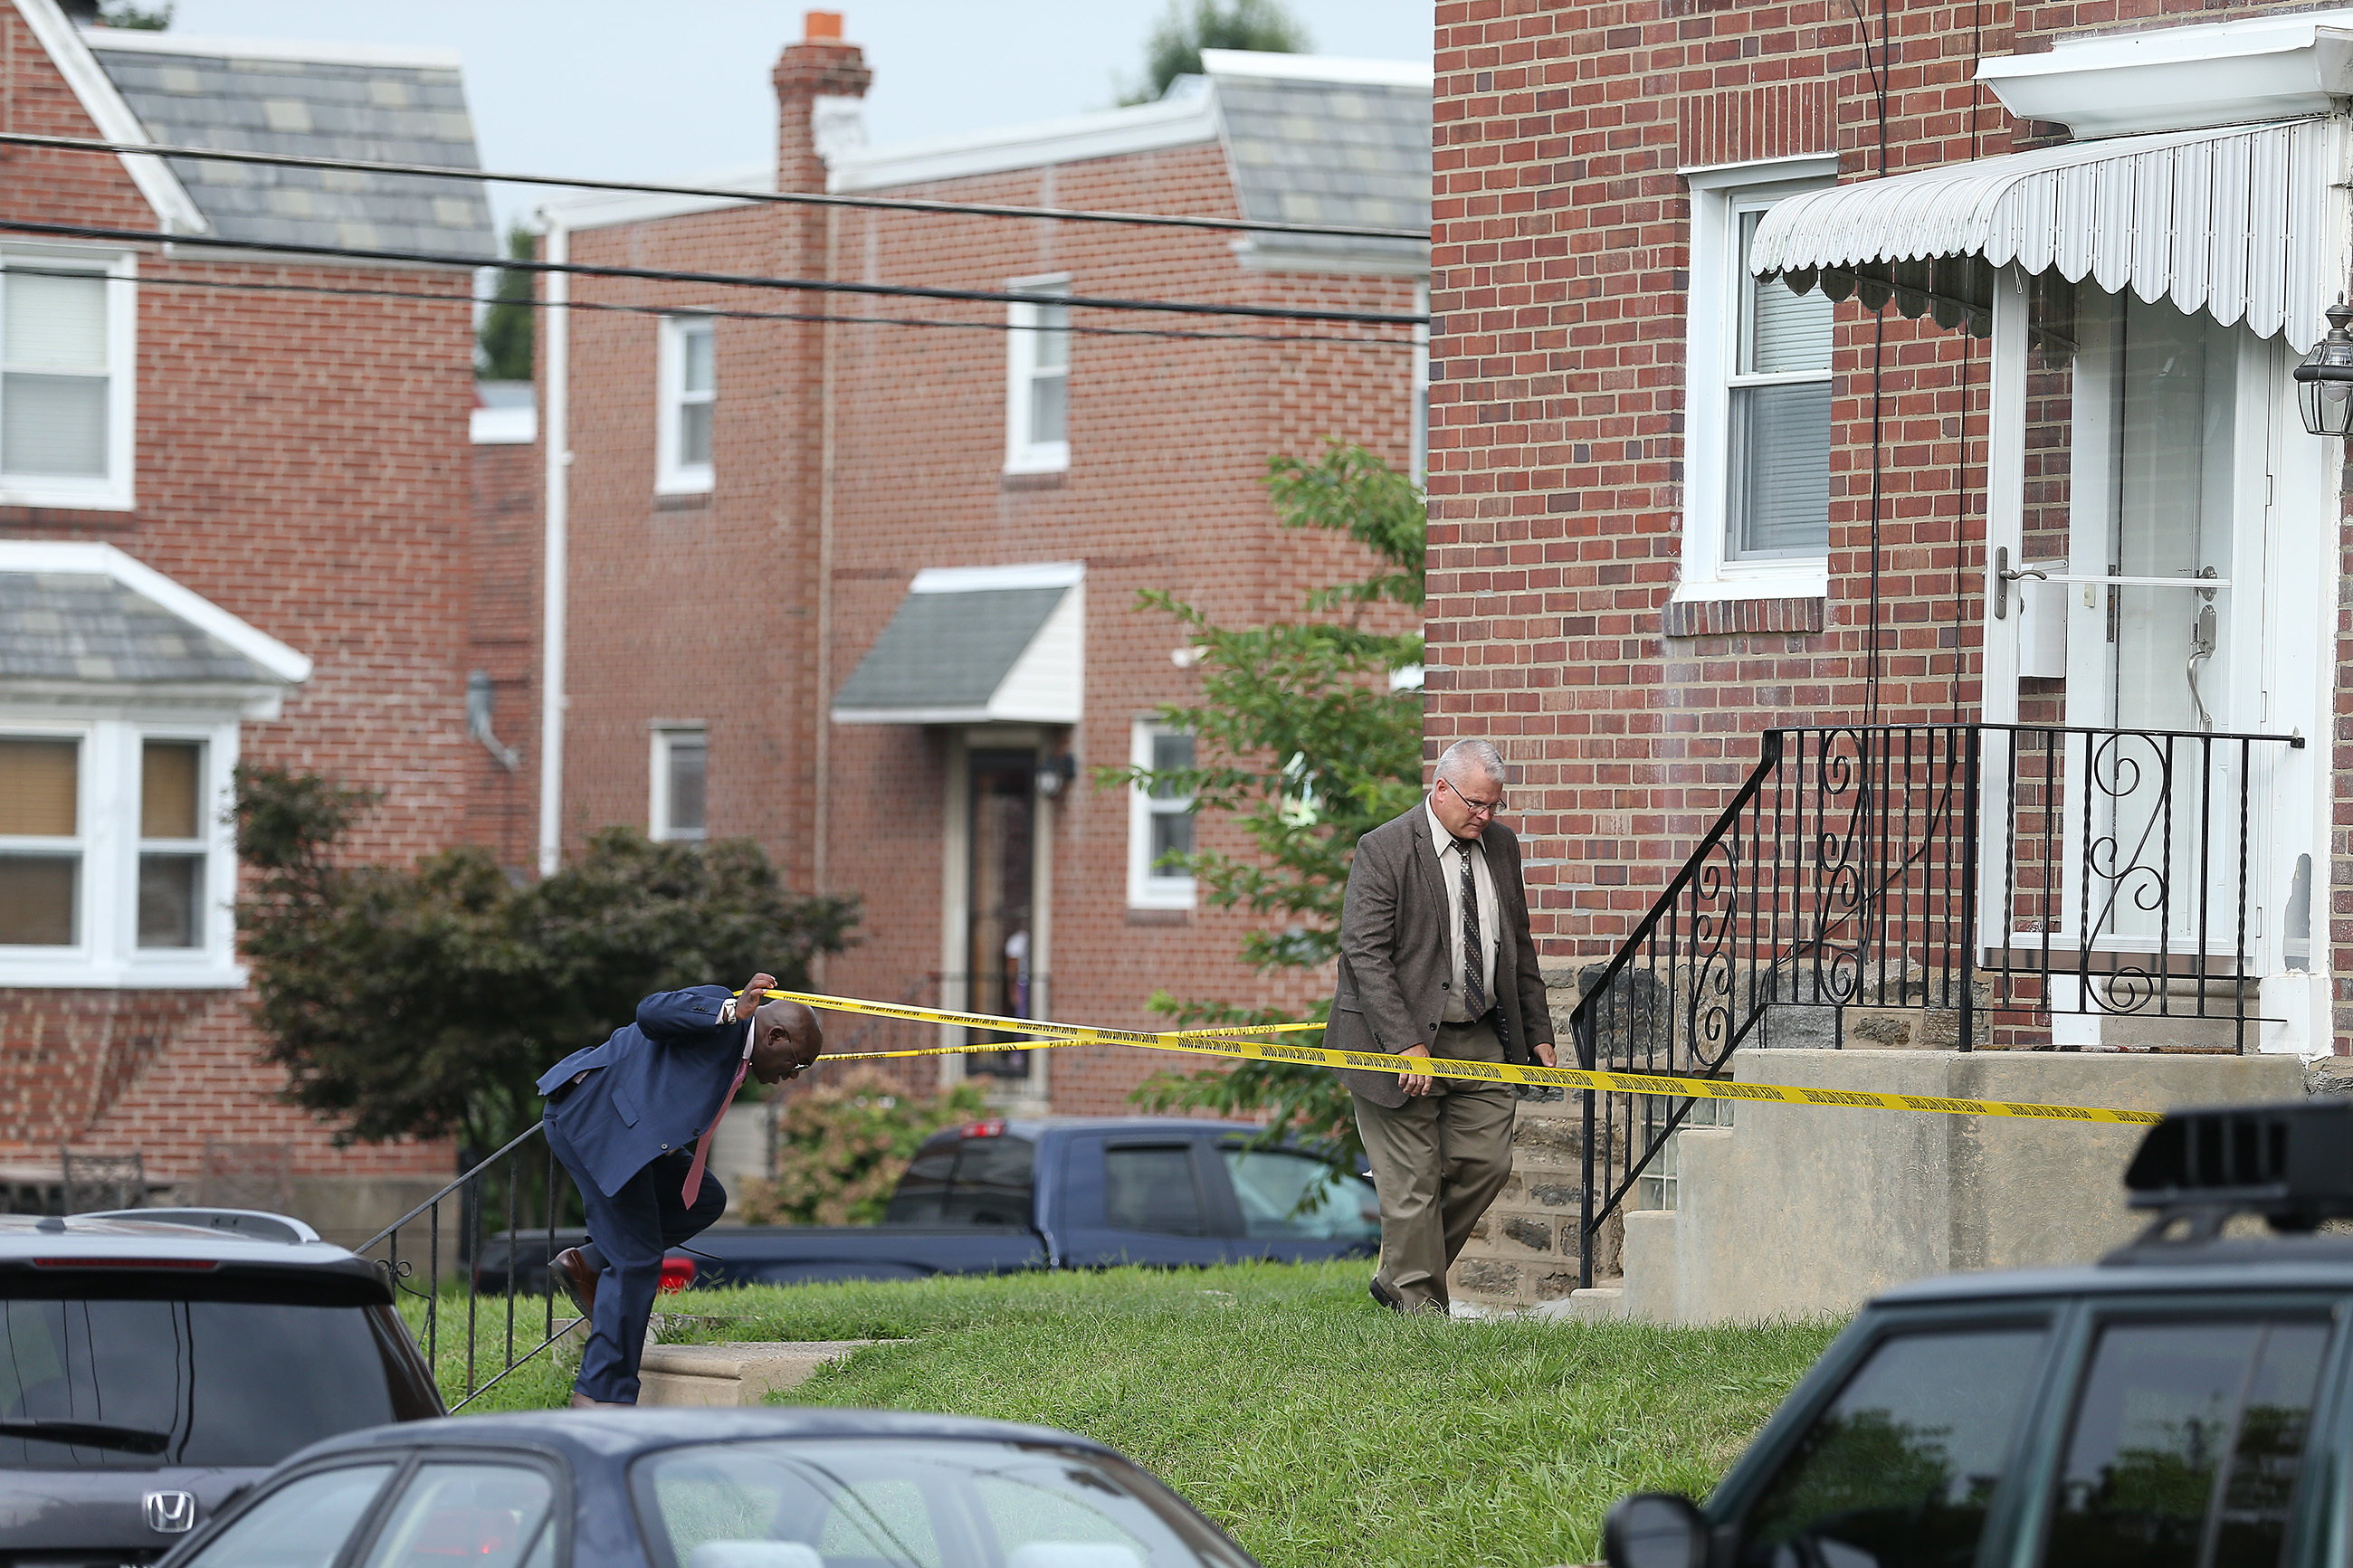 Investigators arrive along the 4000 block of Meridian Street in Philadelphia, Pa. on Aug. 17, 2018.